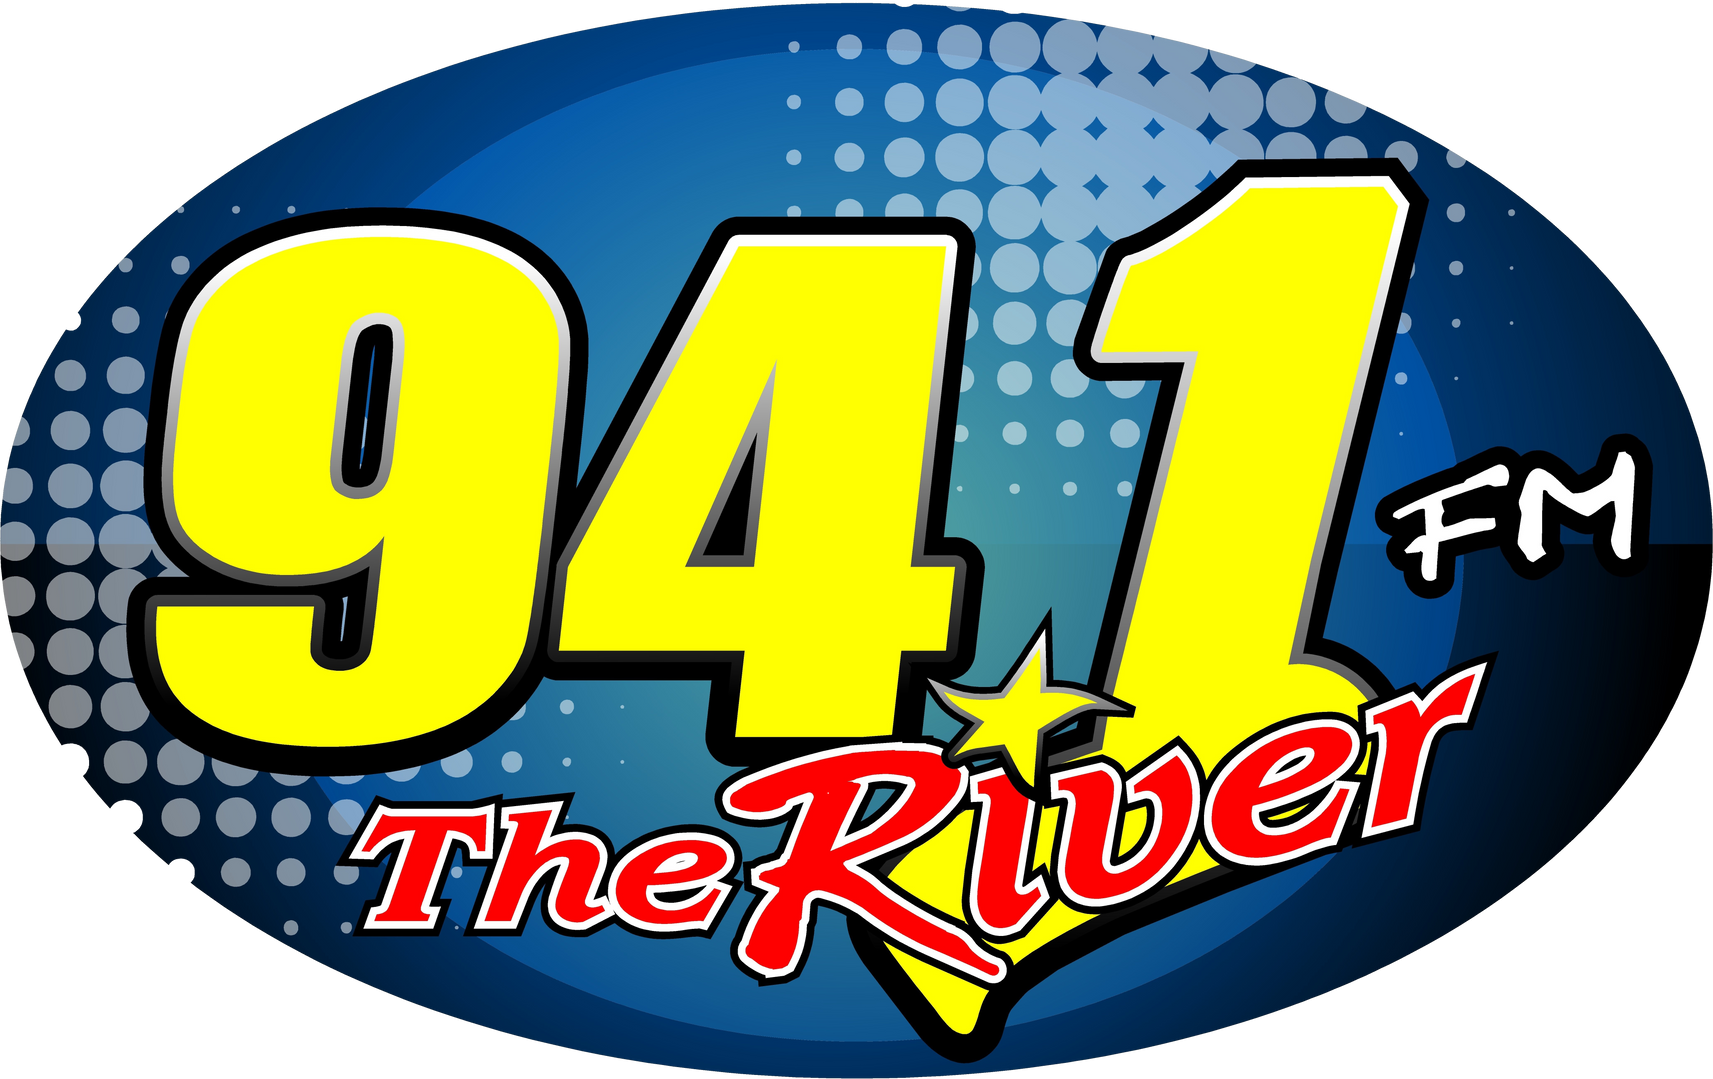 94.1 The River Logo.png